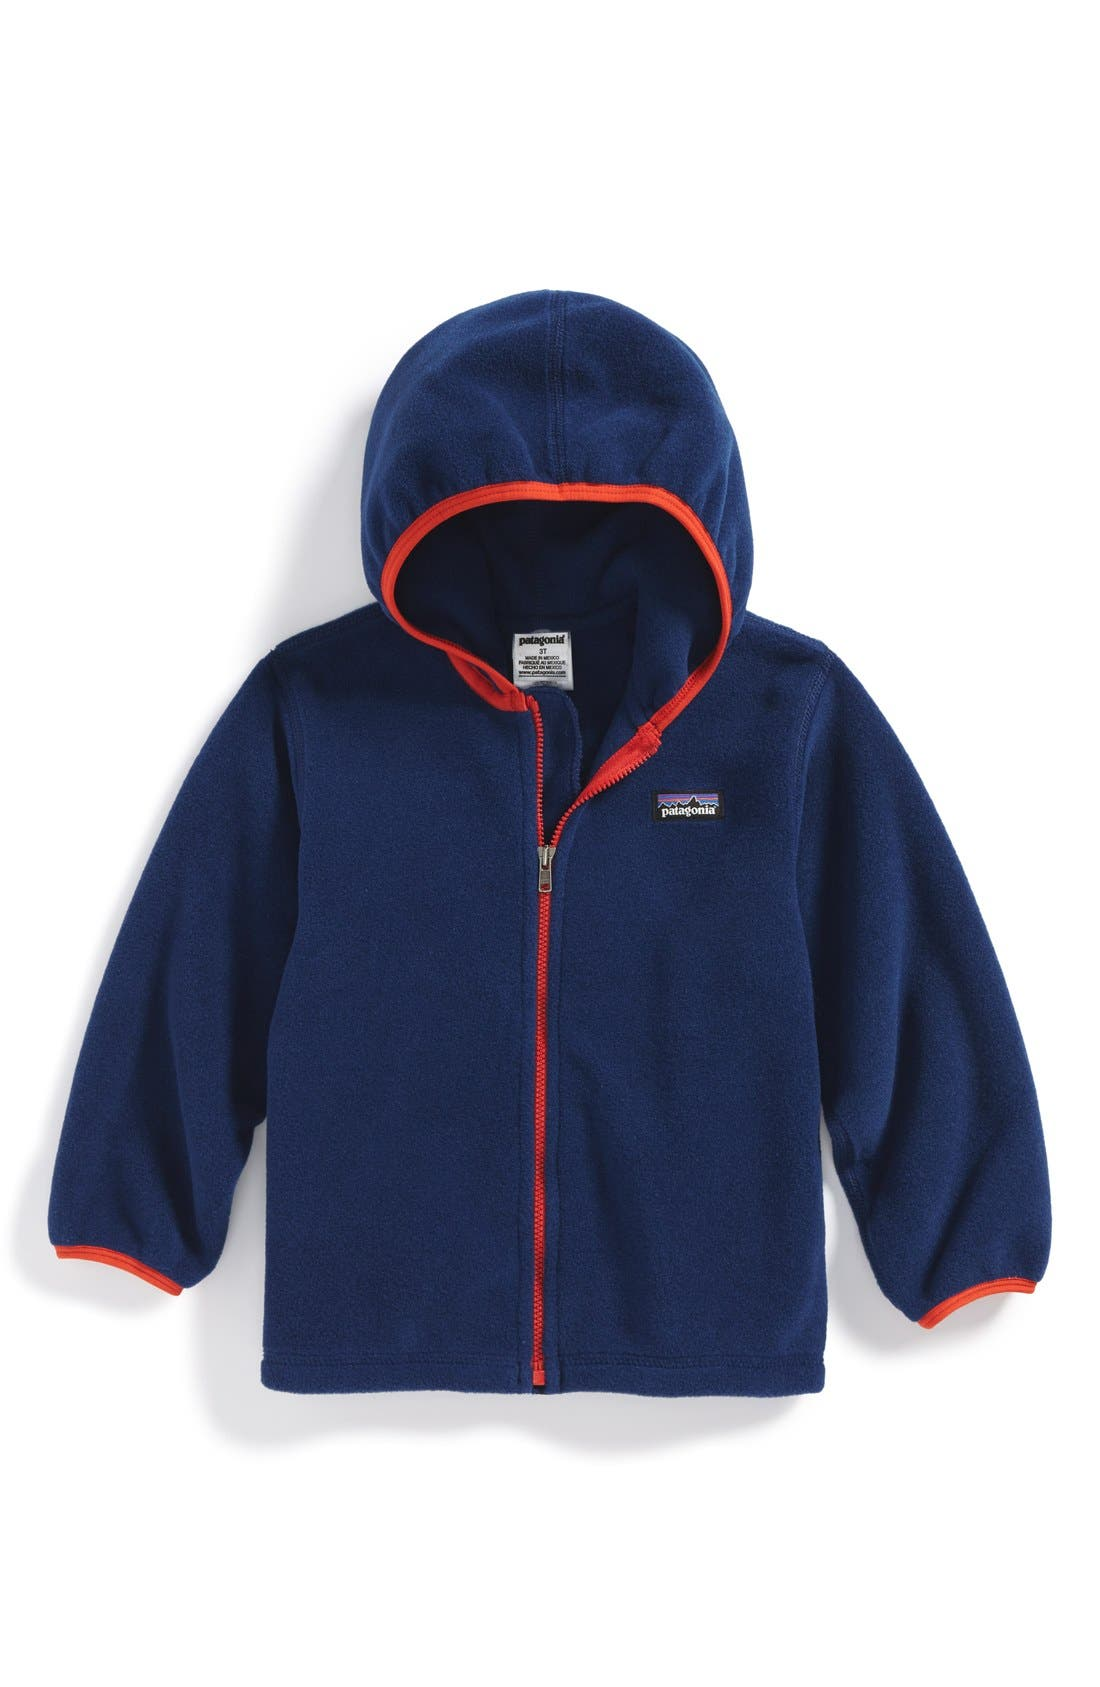 Alternate Image 1 Selected - Patagonia 'Synchilla®' Cardigan (Toddler)